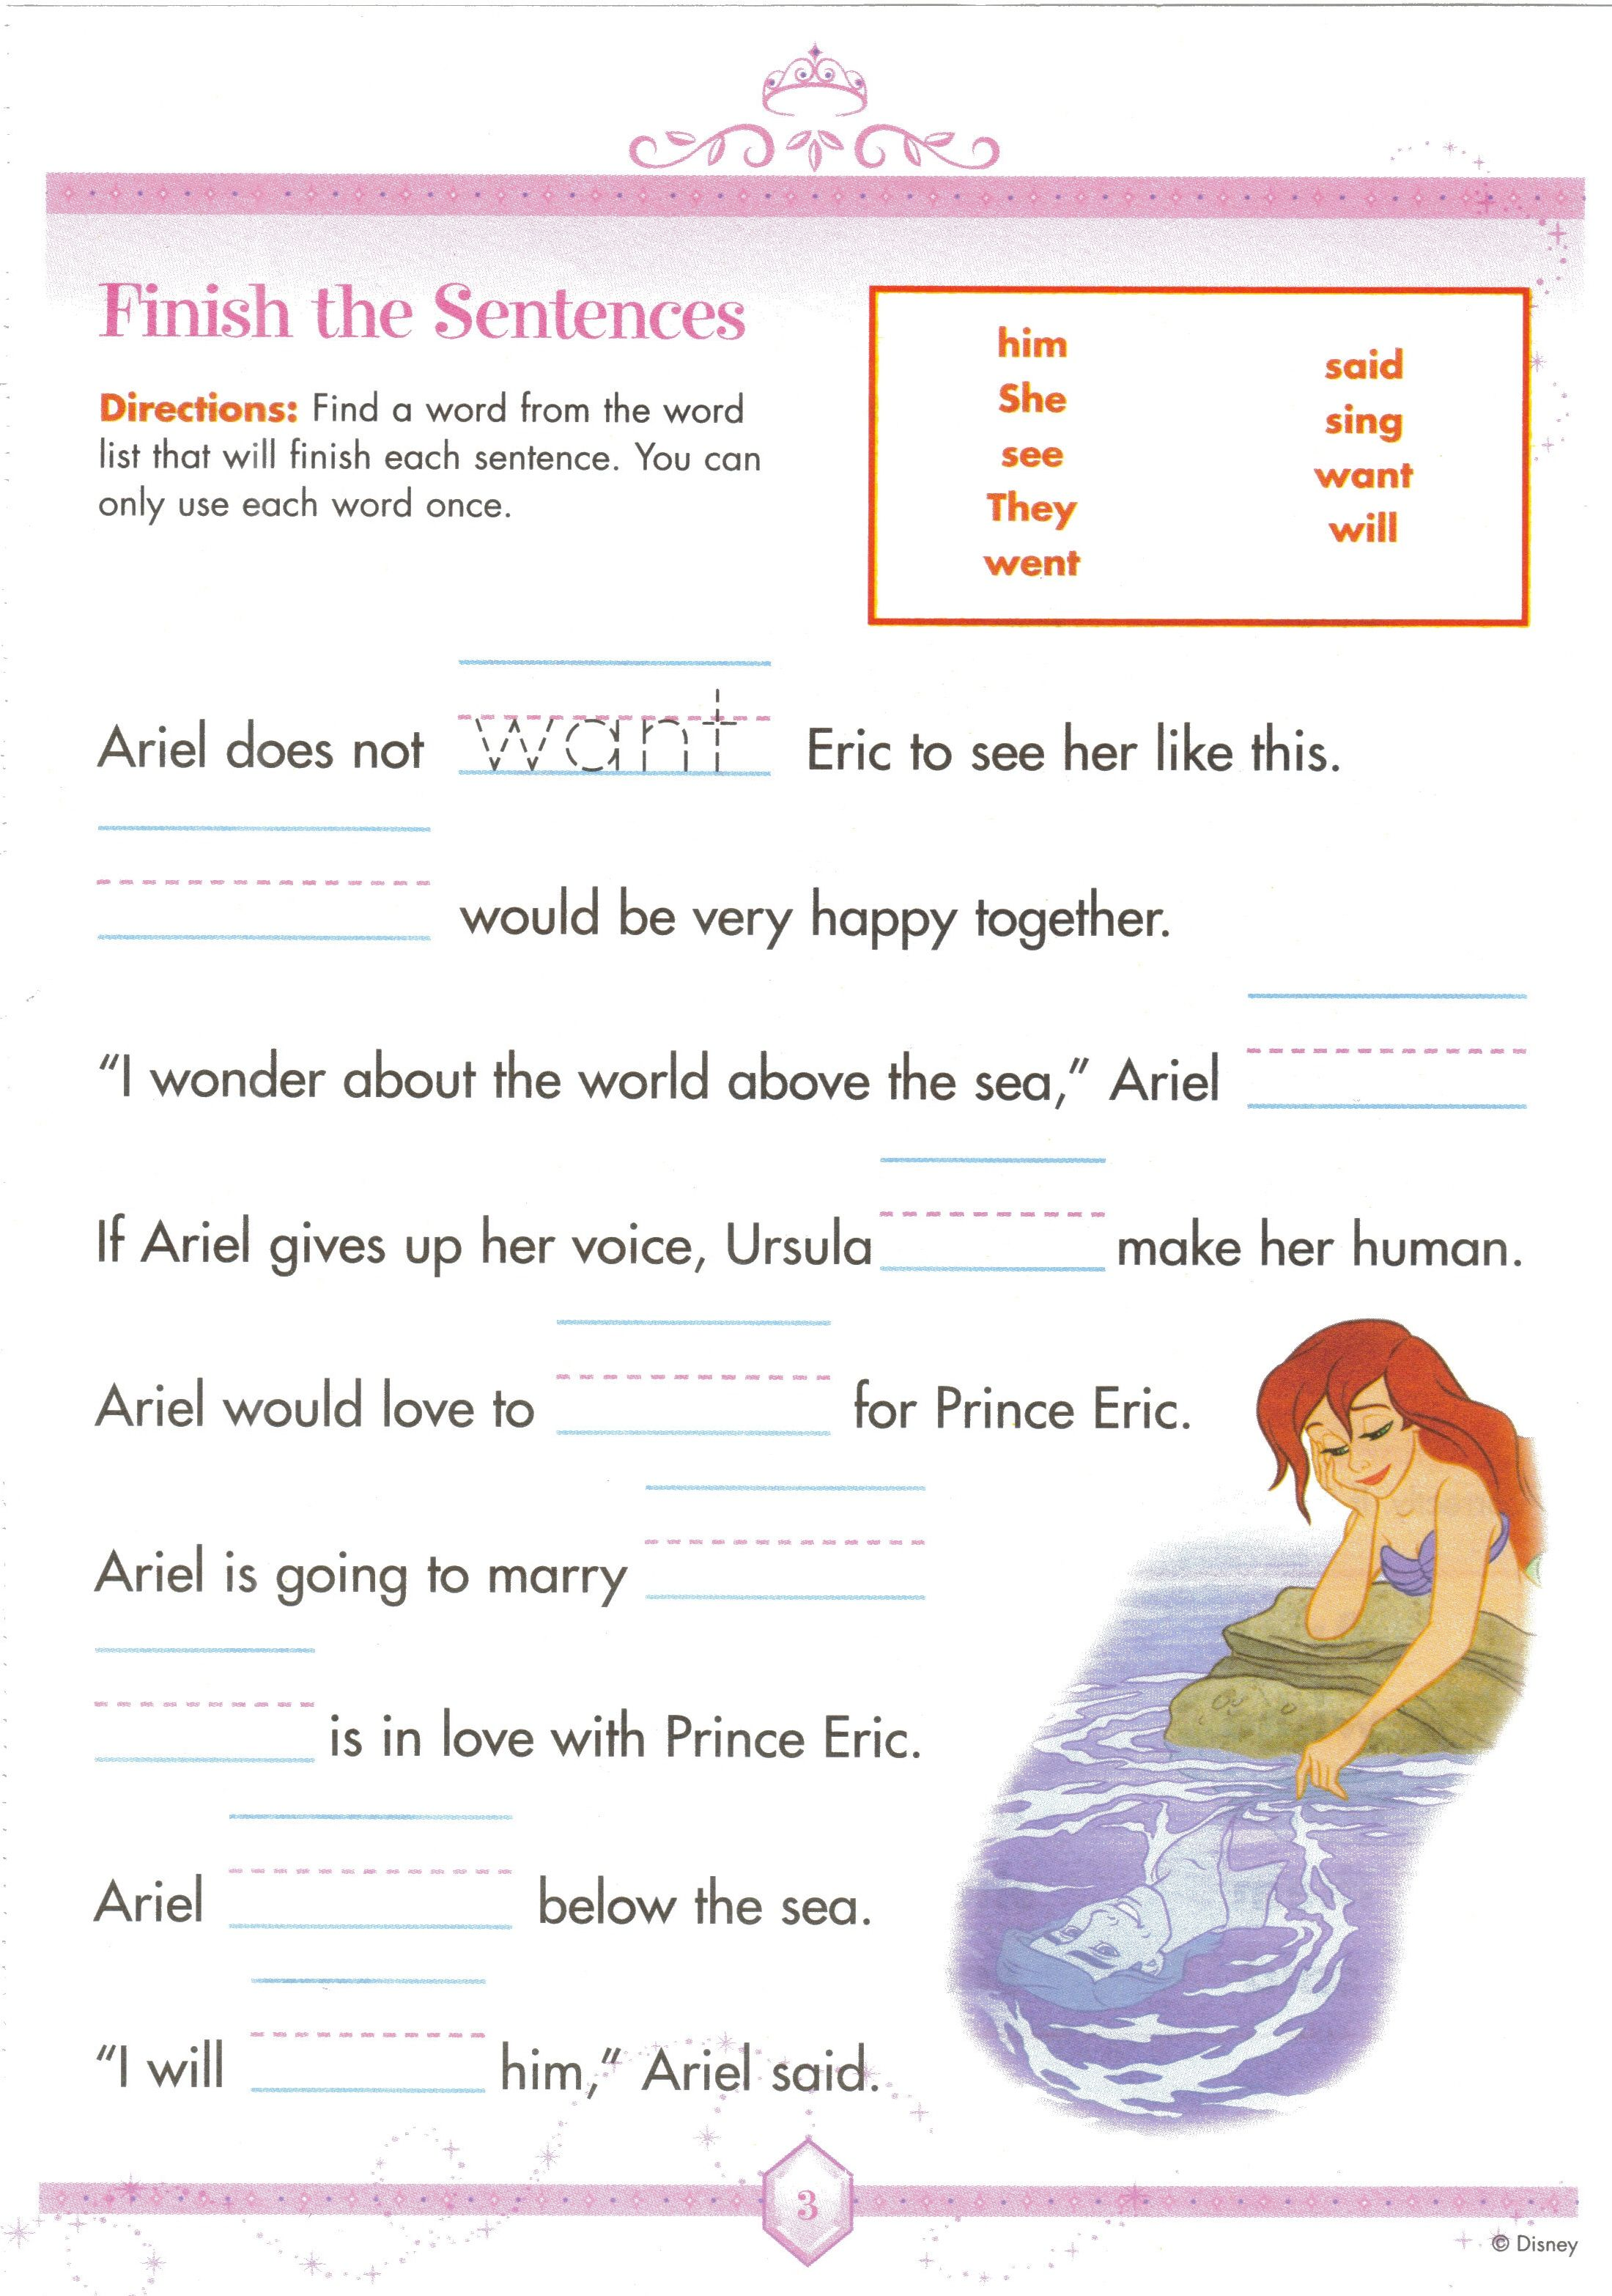 Weirdmailus  Inspiring  Images About Worksheets On Pinterest  Fun Facts For Kids  With Handsome  Images About Worksheets On Pinterest  Fun Facts For Kids Earth Day Worksheets And Jungles With Divine Simile Worksheets Middle School Also Nouns Worksheet First Grade In Addition Un Prefix Worksheet And Net Force Worksheets As Well As High School Worksheet Additionally Nd Grade Context Clues Worksheets From Pinterestcom With Weirdmailus  Handsome  Images About Worksheets On Pinterest  Fun Facts For Kids  With Divine  Images About Worksheets On Pinterest  Fun Facts For Kids Earth Day Worksheets And Jungles And Inspiring Simile Worksheets Middle School Also Nouns Worksheet First Grade In Addition Un Prefix Worksheet From Pinterestcom